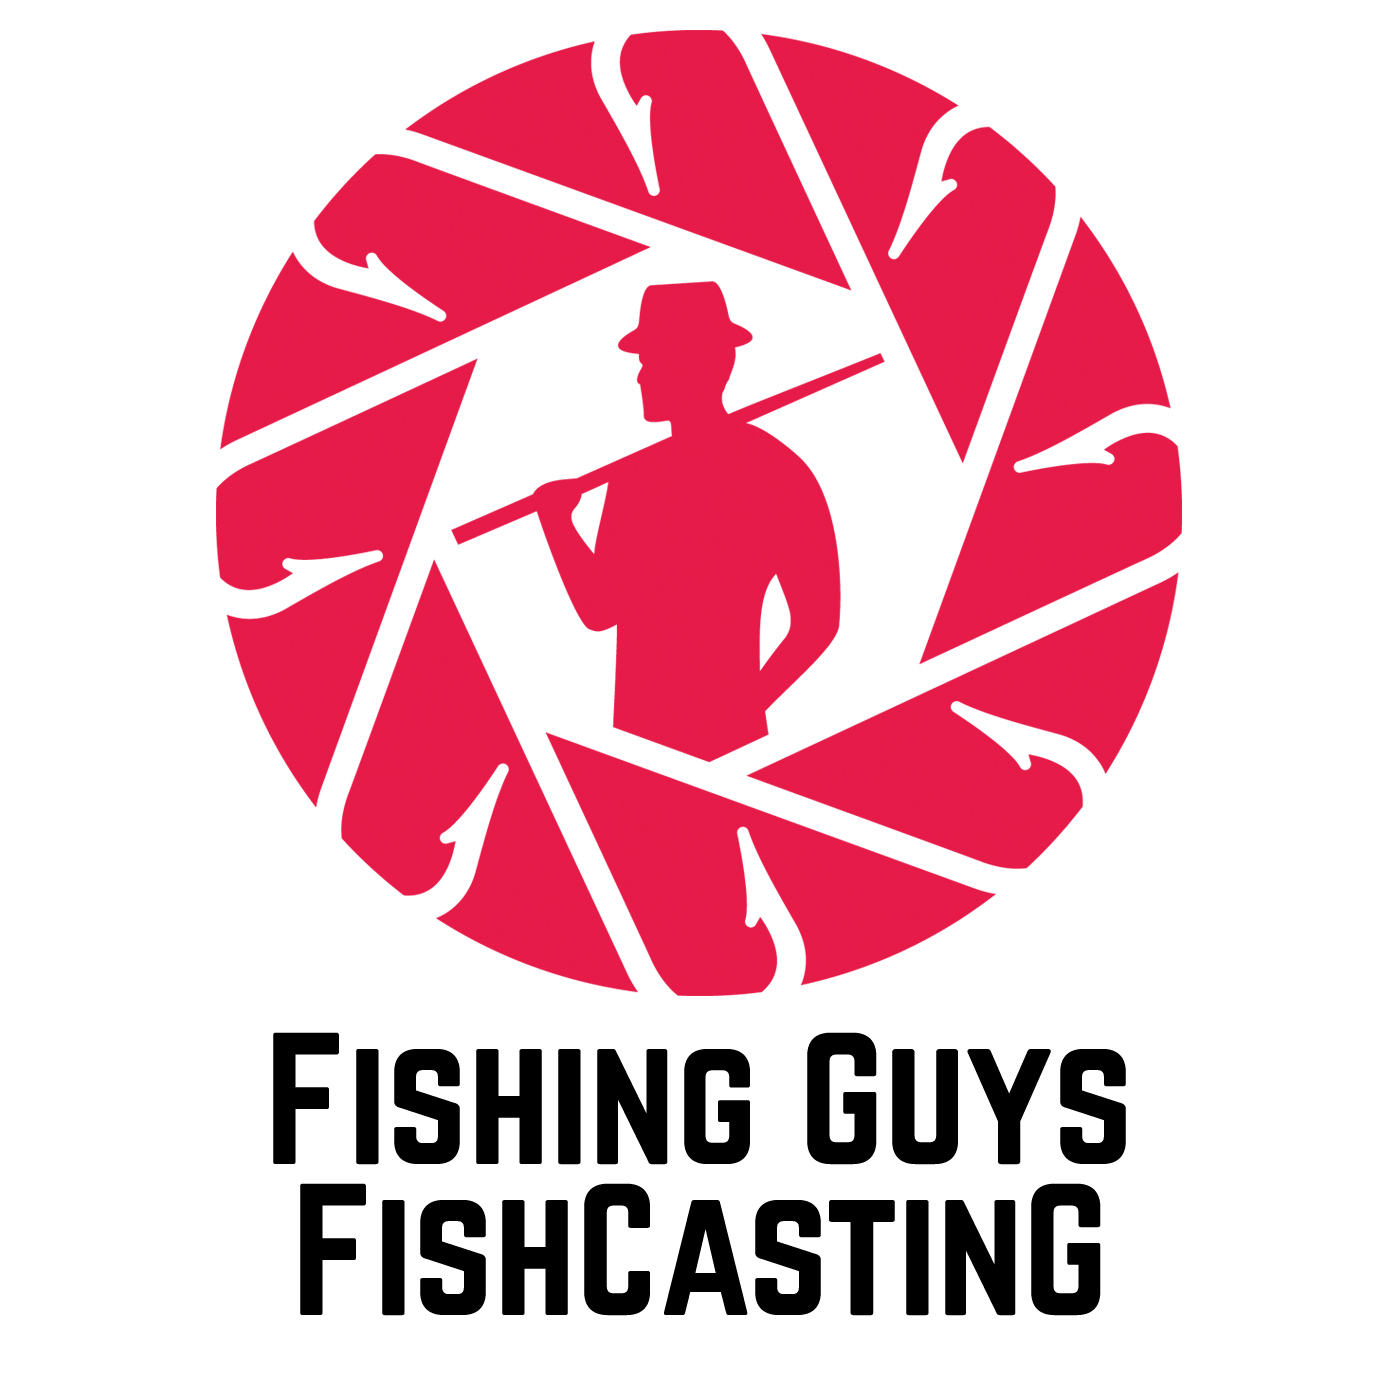 FishCasting - Fishing Guys